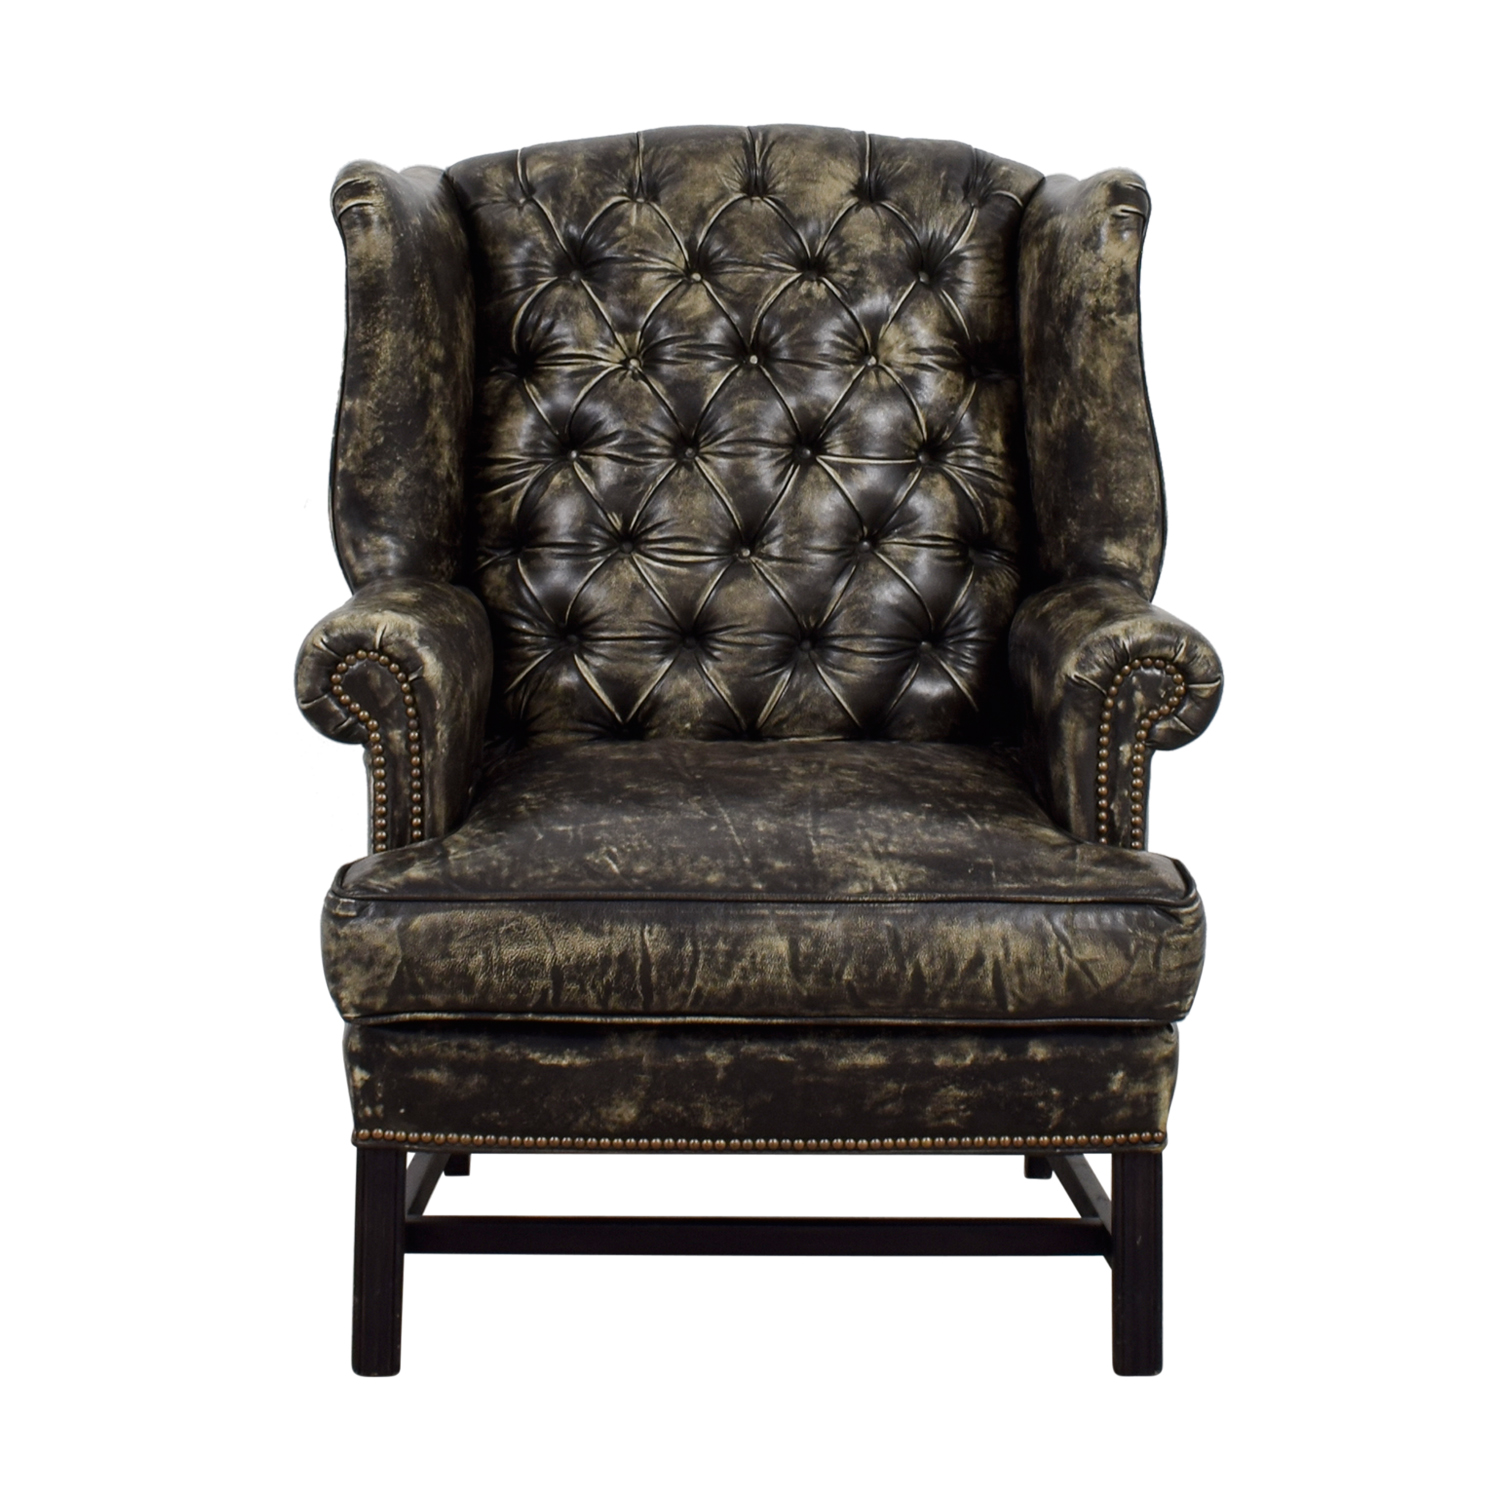 buy Restoration Hardware Wingback Distressed Black and Cream Leather Chair Restoration Hardware Accent Chairs